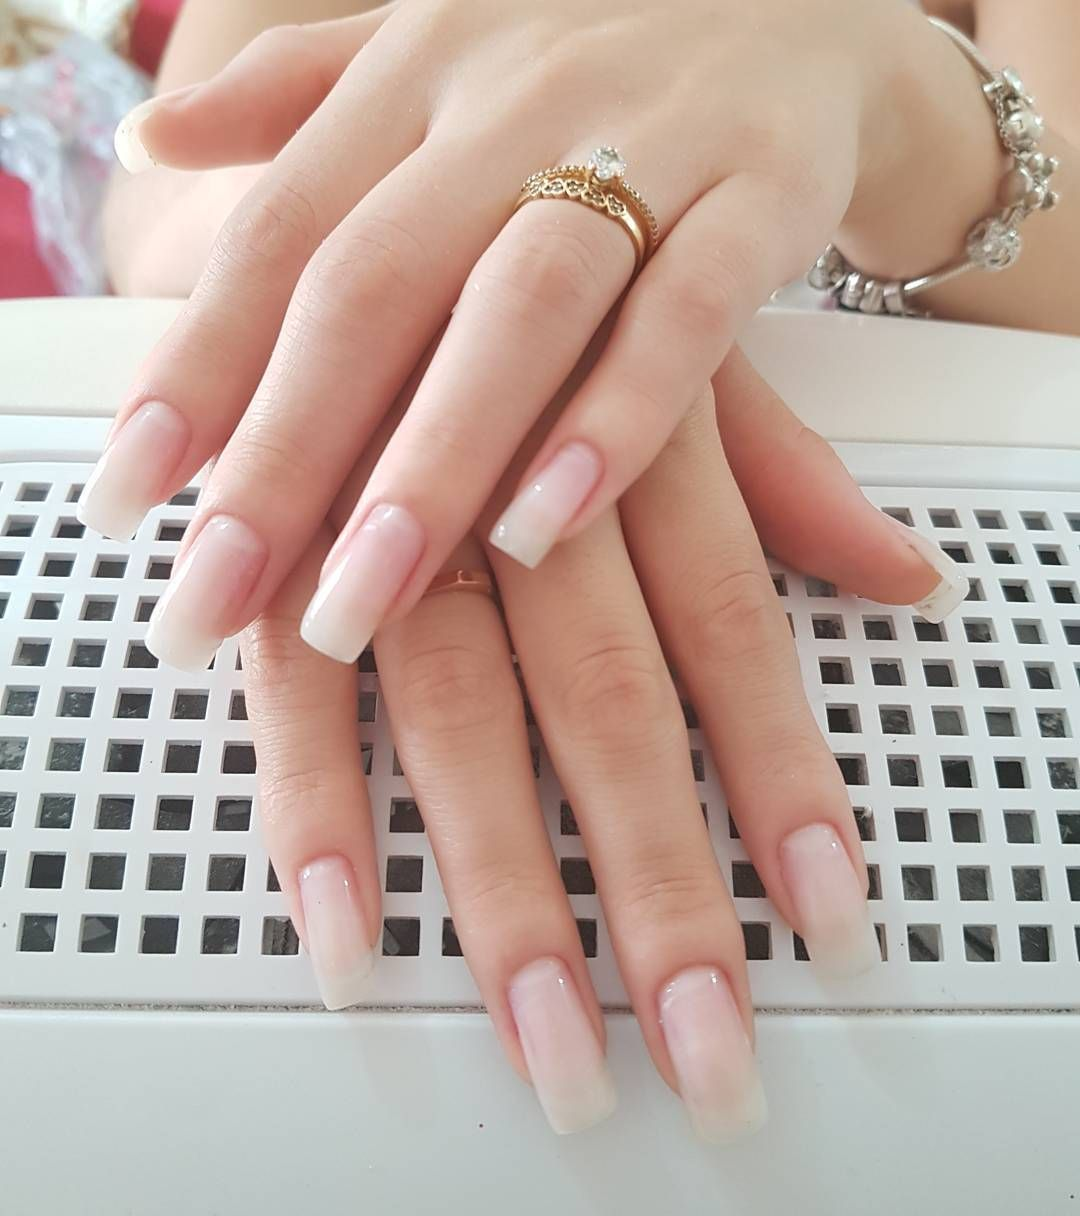 Pin by N on Nail design | Pinterest | Manicure, Double team and Nail ...